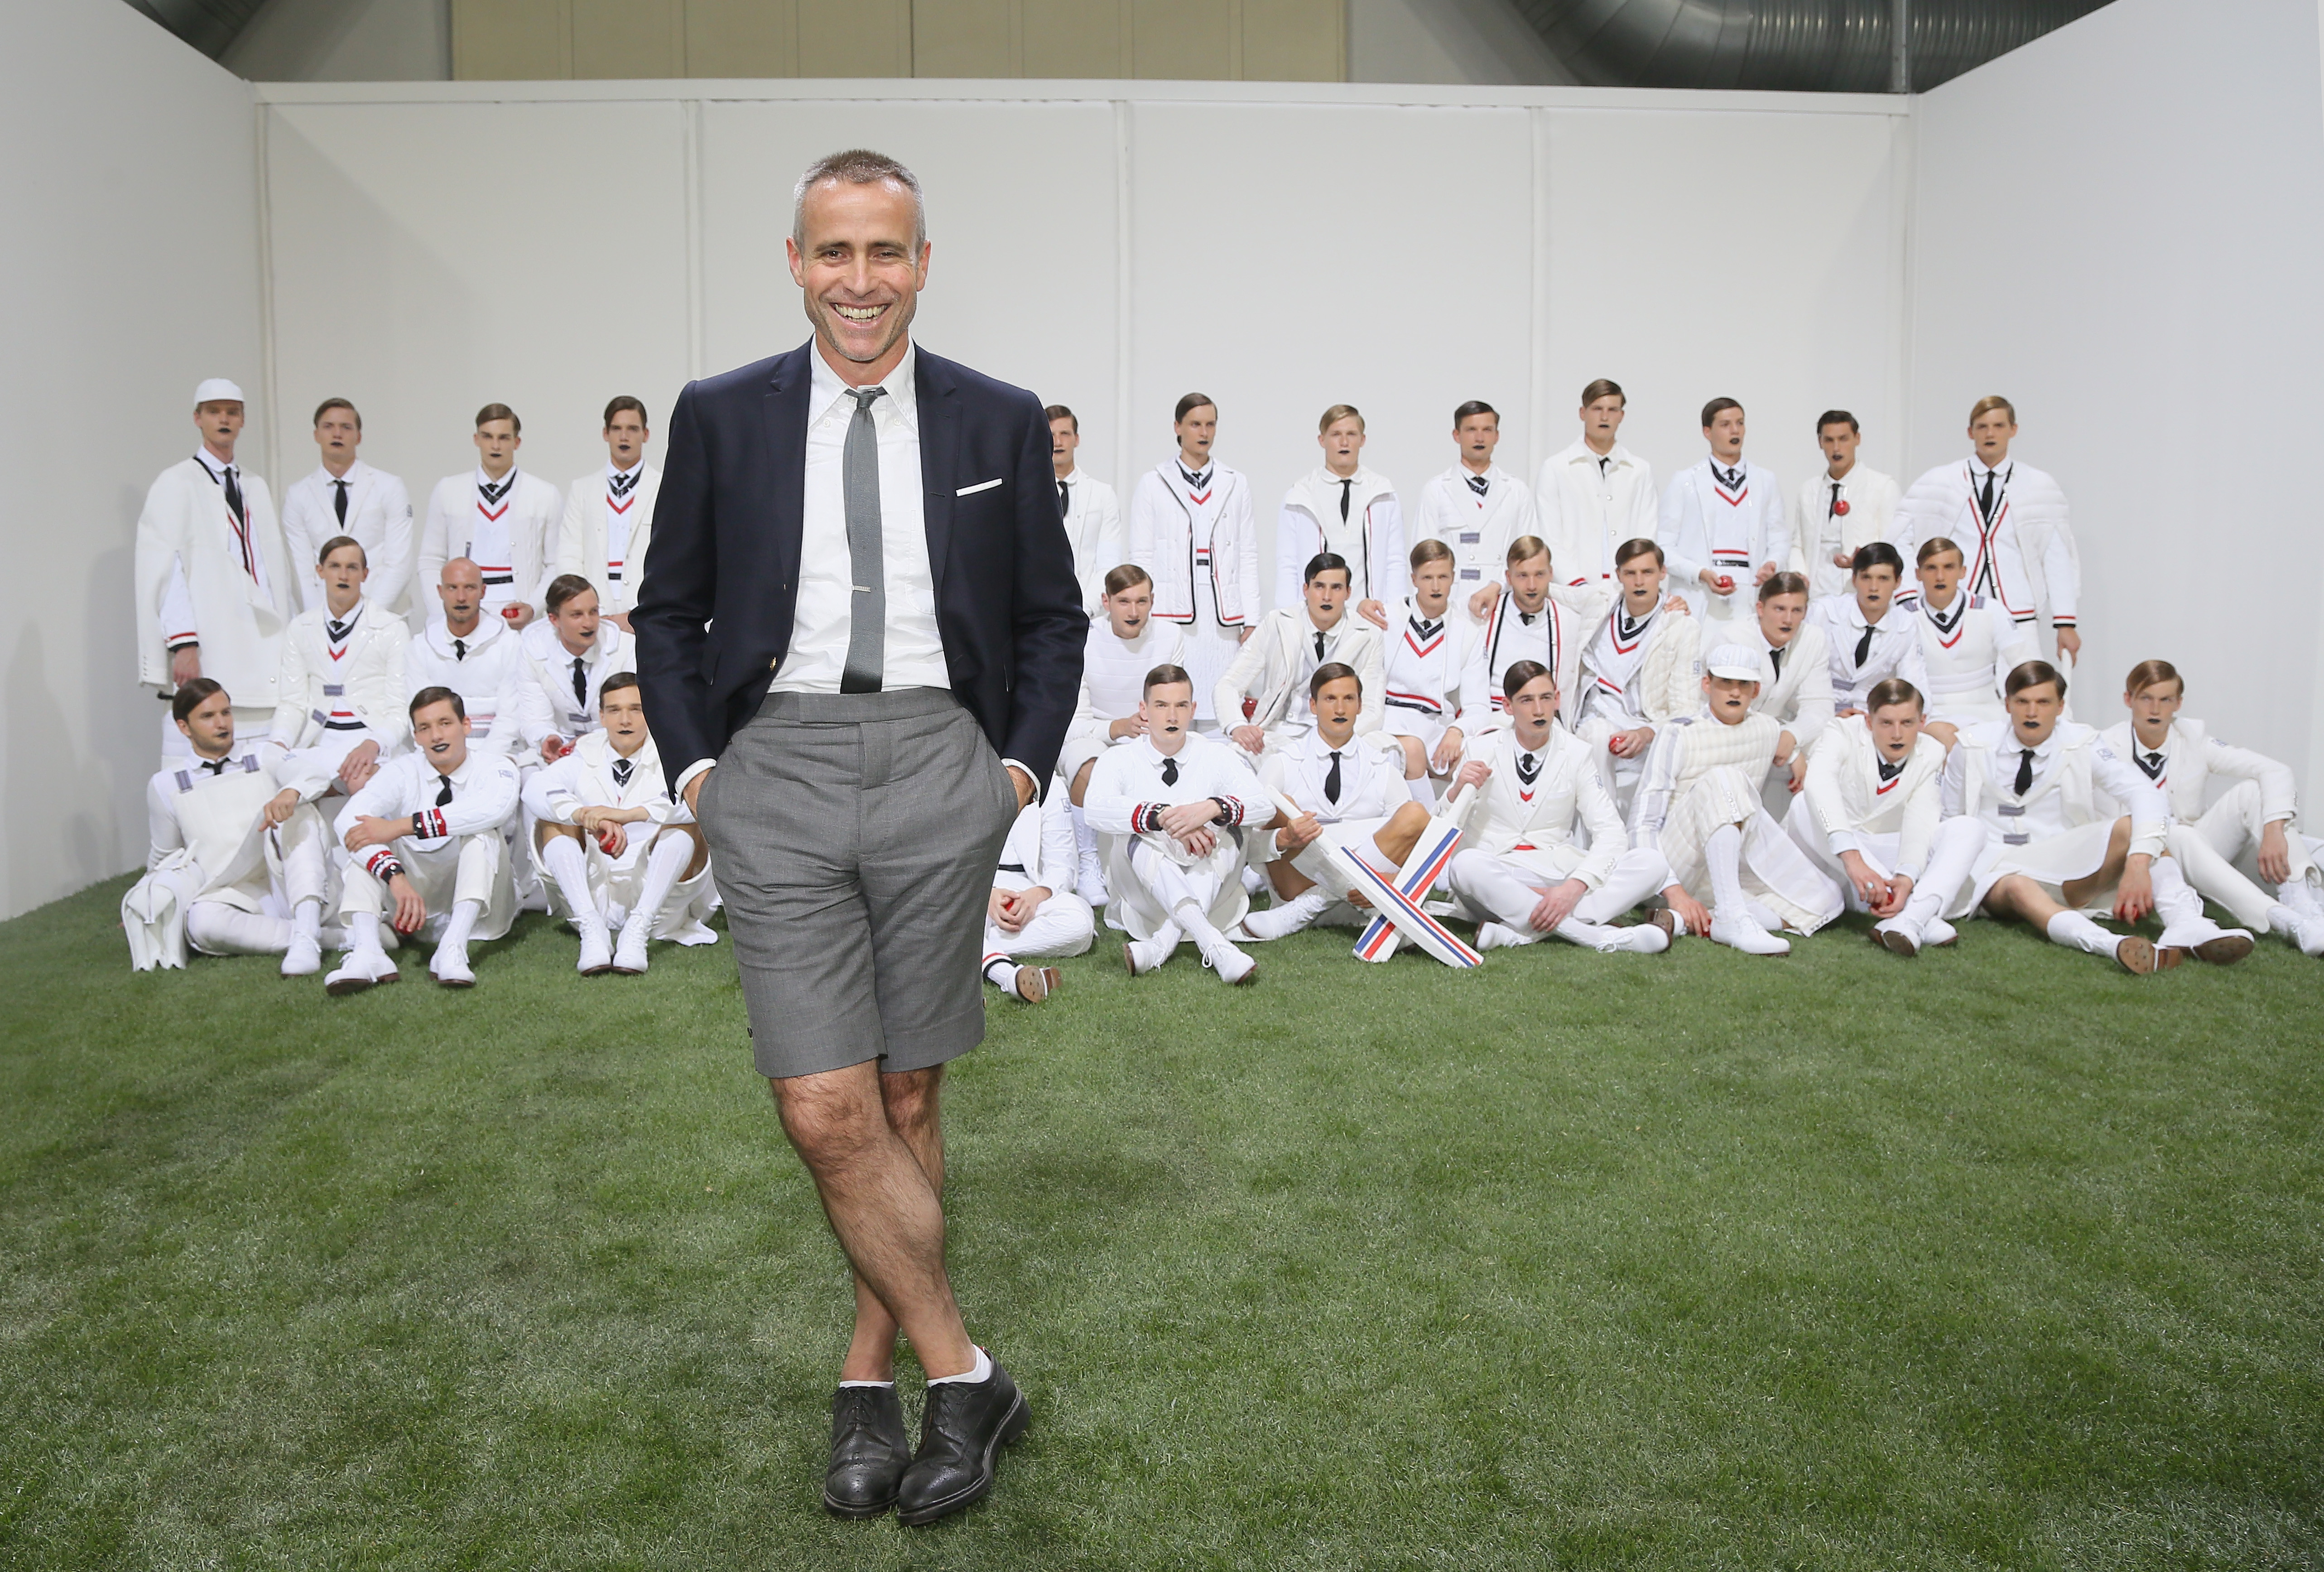 Thom Browne after a Moncler Gamme Bleu show last year (Photo: Getty).